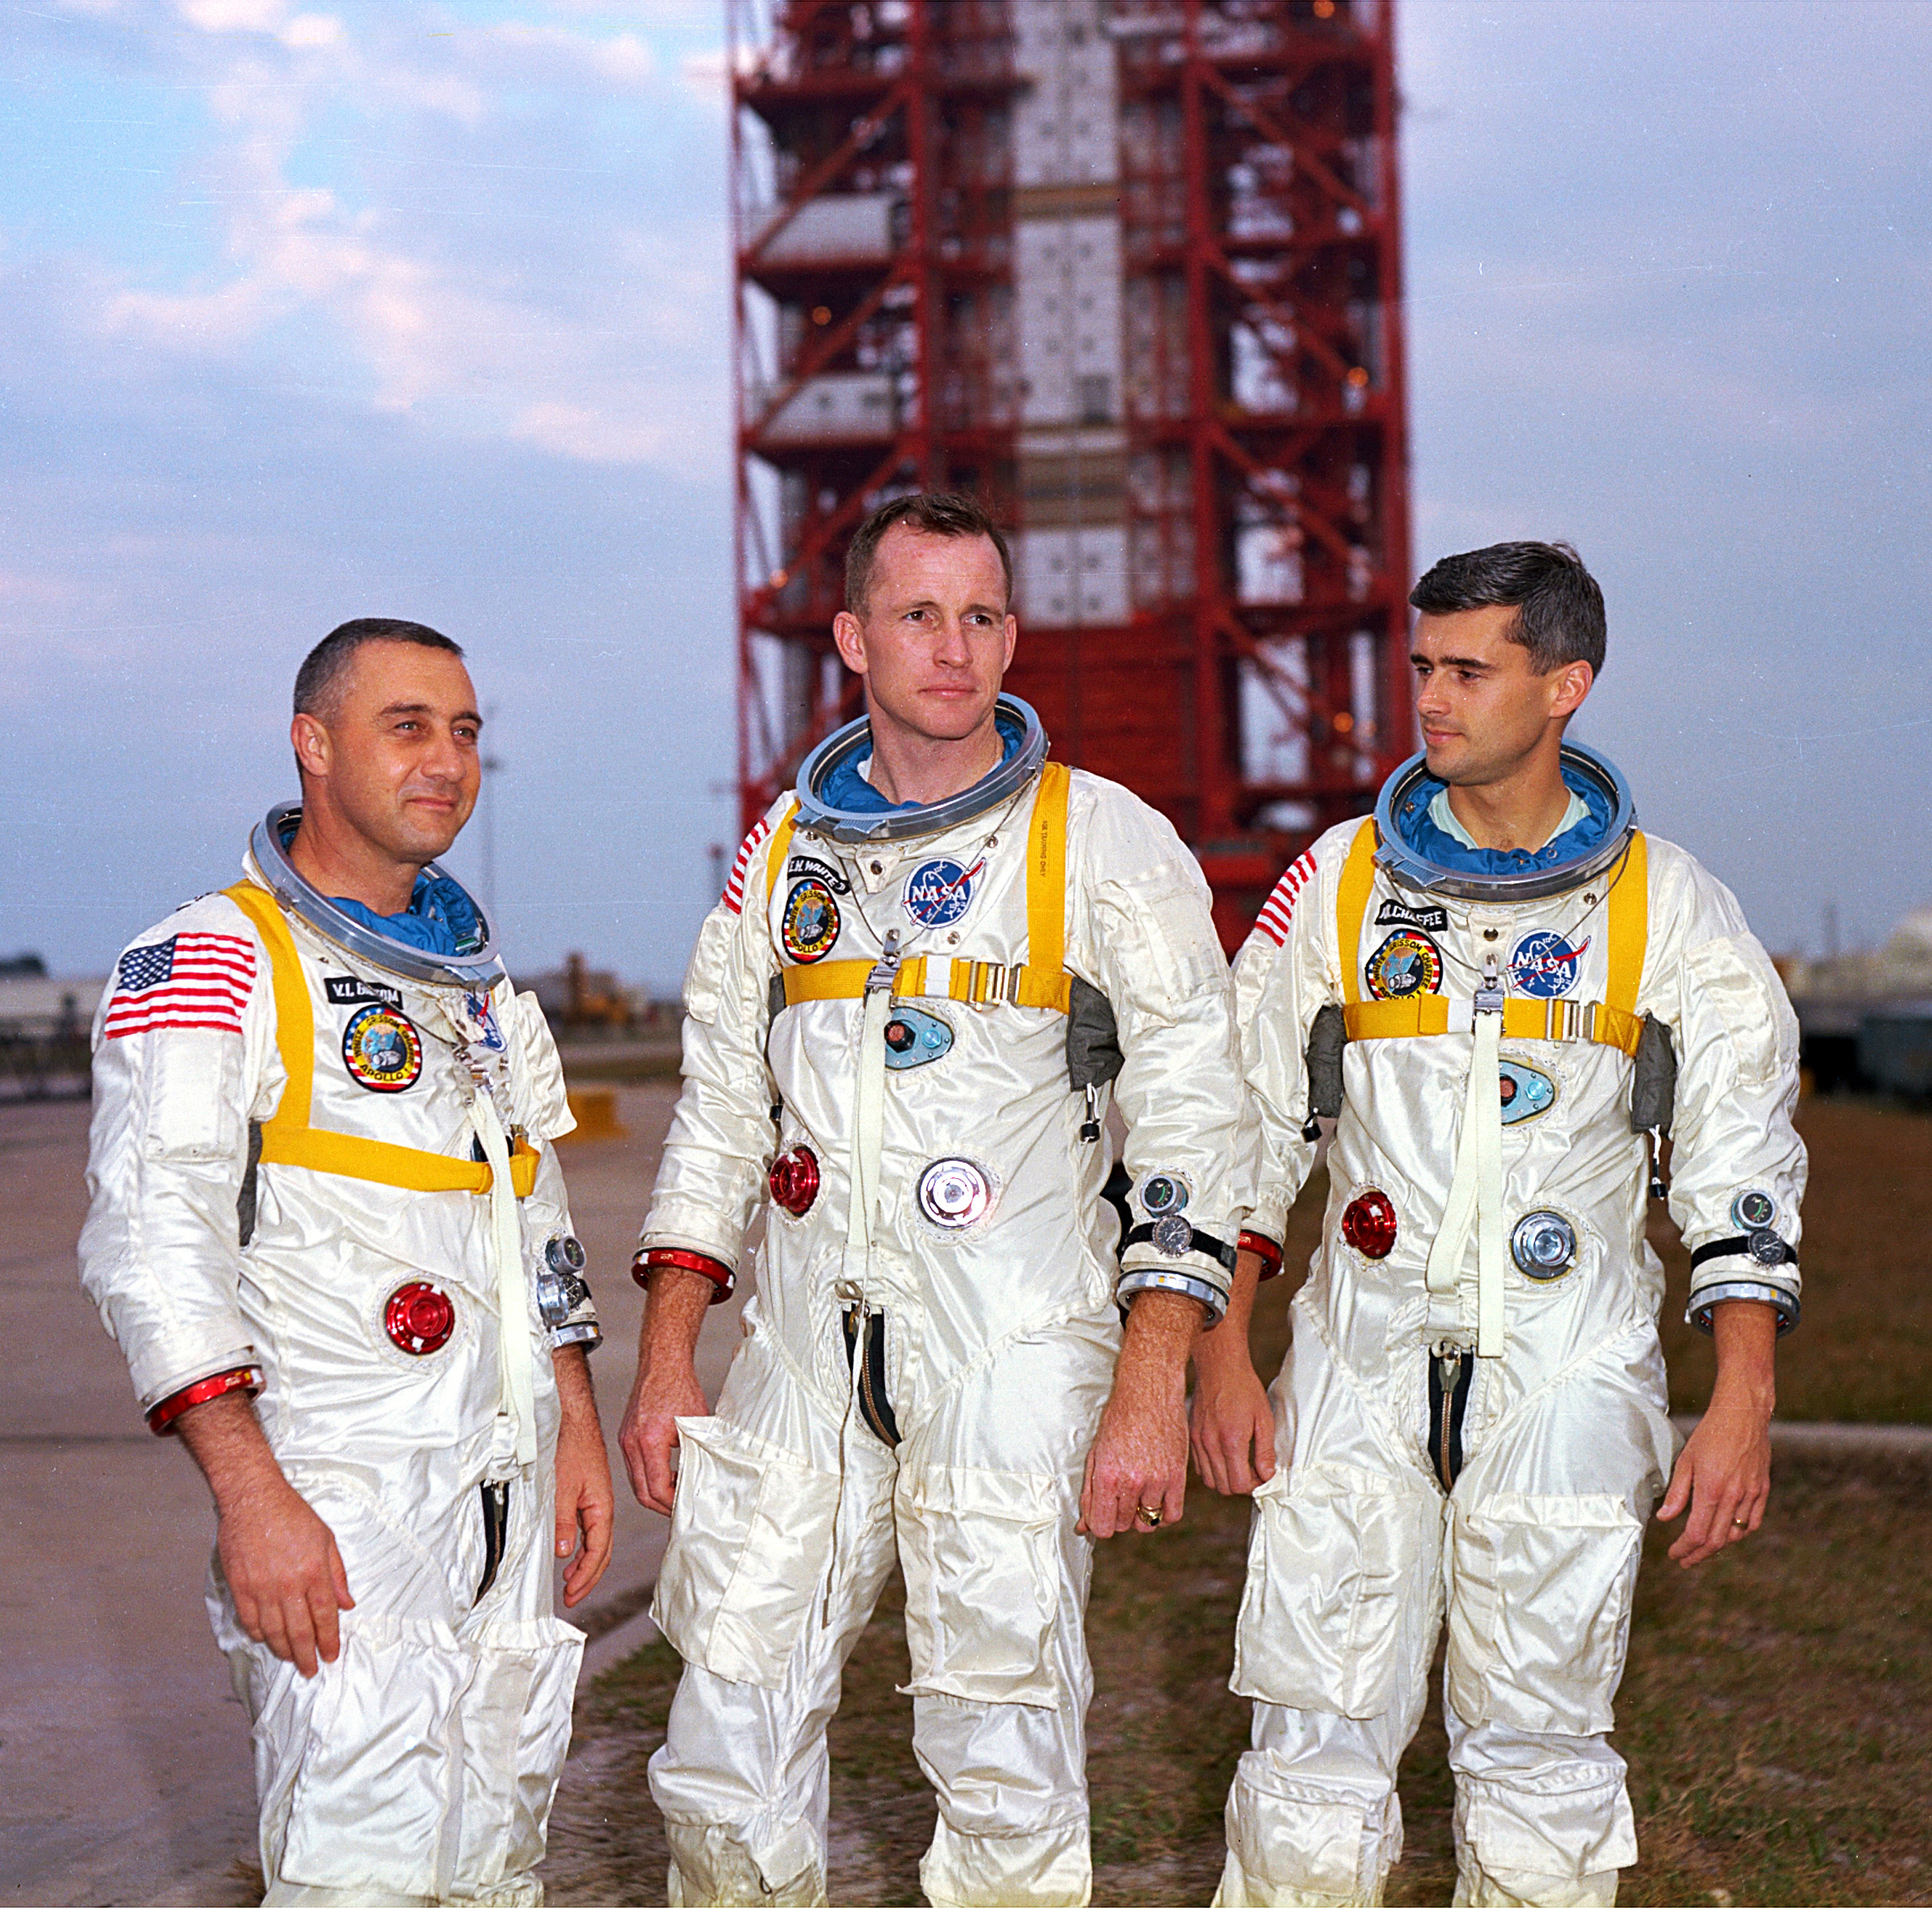 apollo 2 crew - photo #15